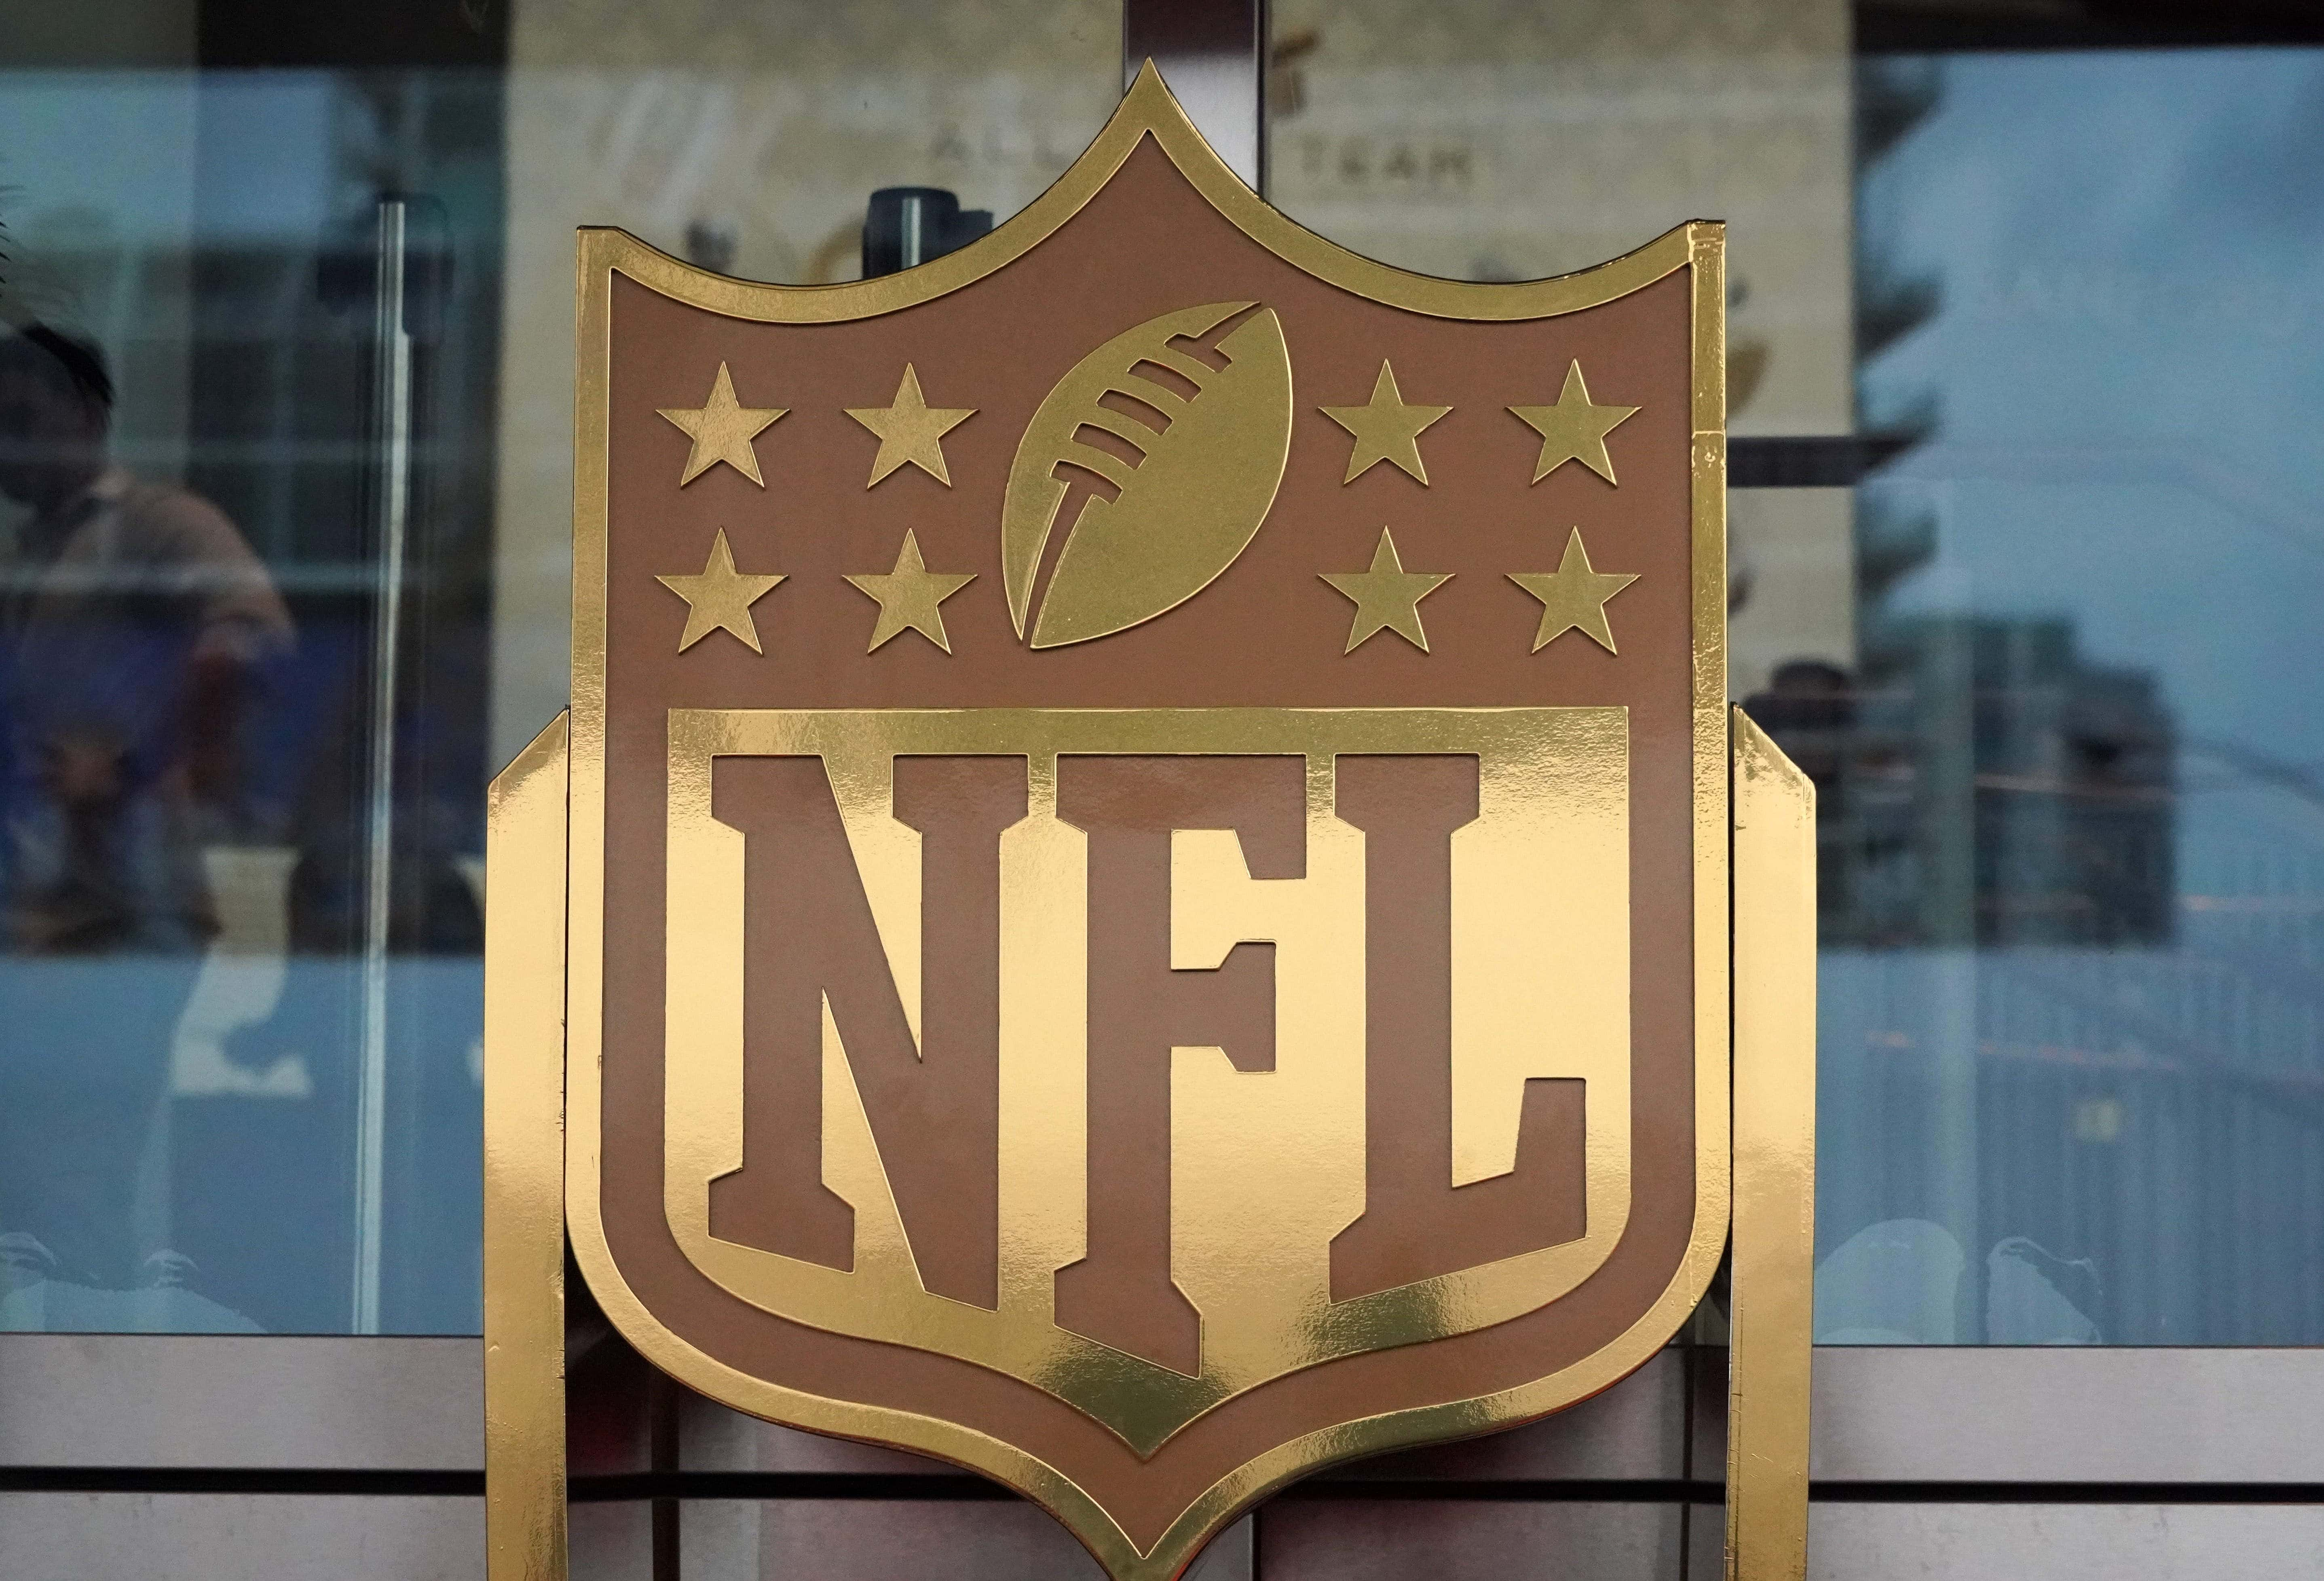 Feb 1, 2020; Miami Gardens, Florida, USA; General overall view of NFL golden shield logo at the NFL Honors show at the Adrienne Arsht Center. Mandatory Credit: Kirby Lee-USA TODAY Sports